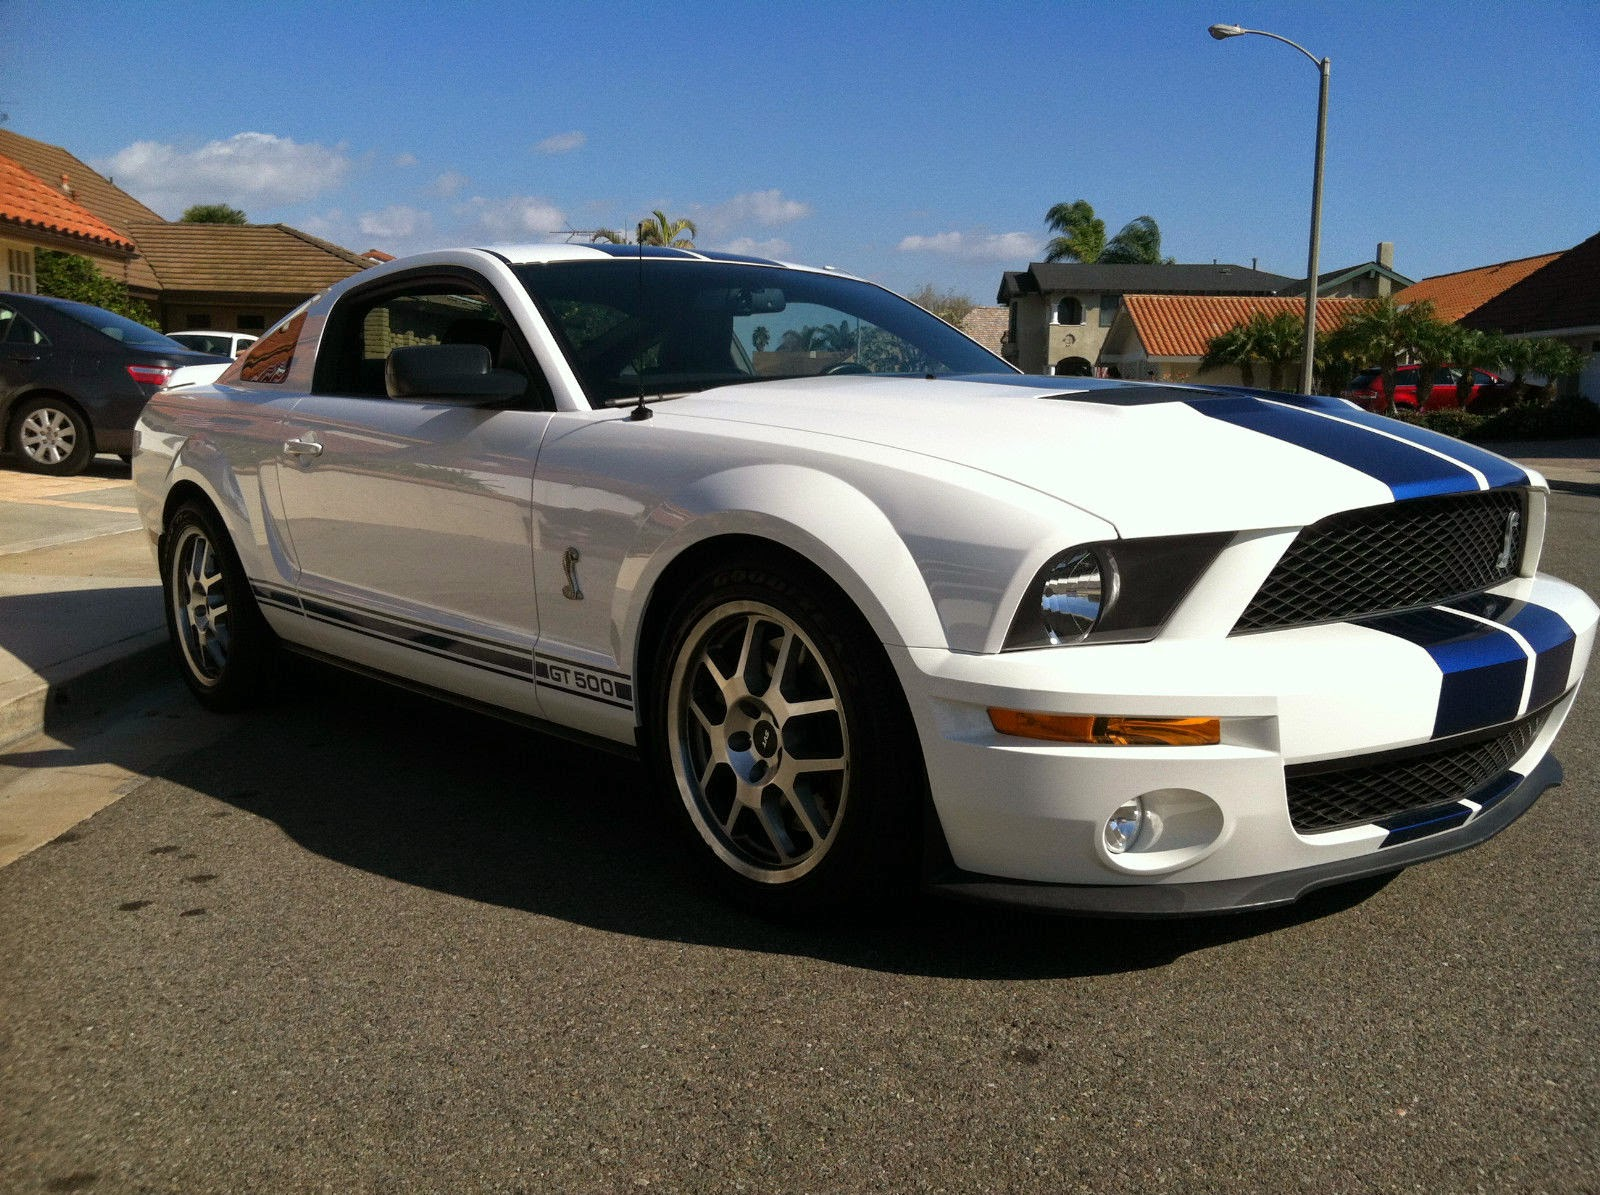 2007 ford mustang shelby gt500 5 4l coupe for sale american muscle cars. Black Bedroom Furniture Sets. Home Design Ideas